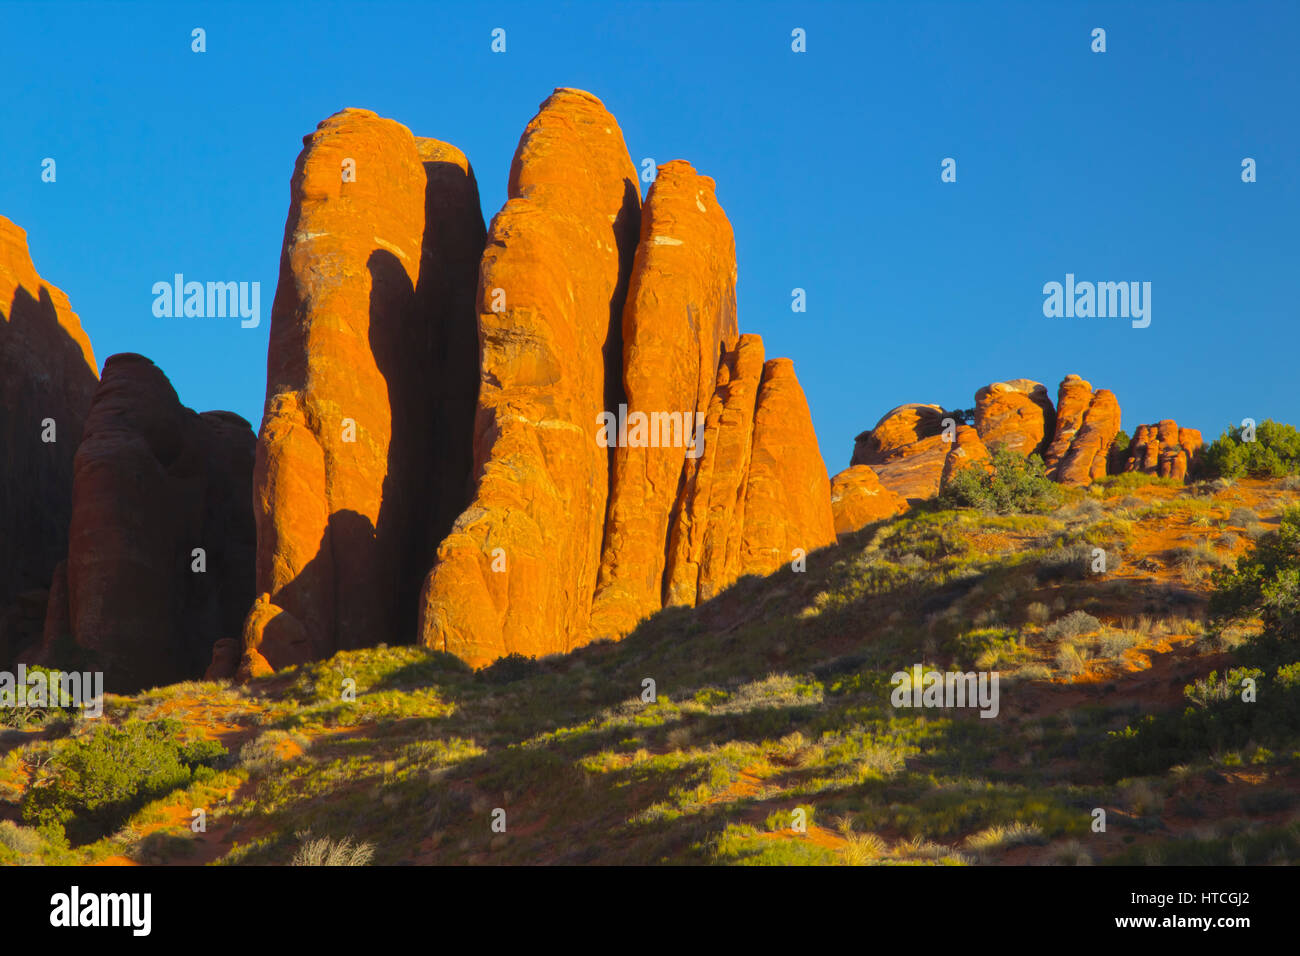 Fins Near Sandstone Arch, Arches National Park, UT, USA - Stock Image